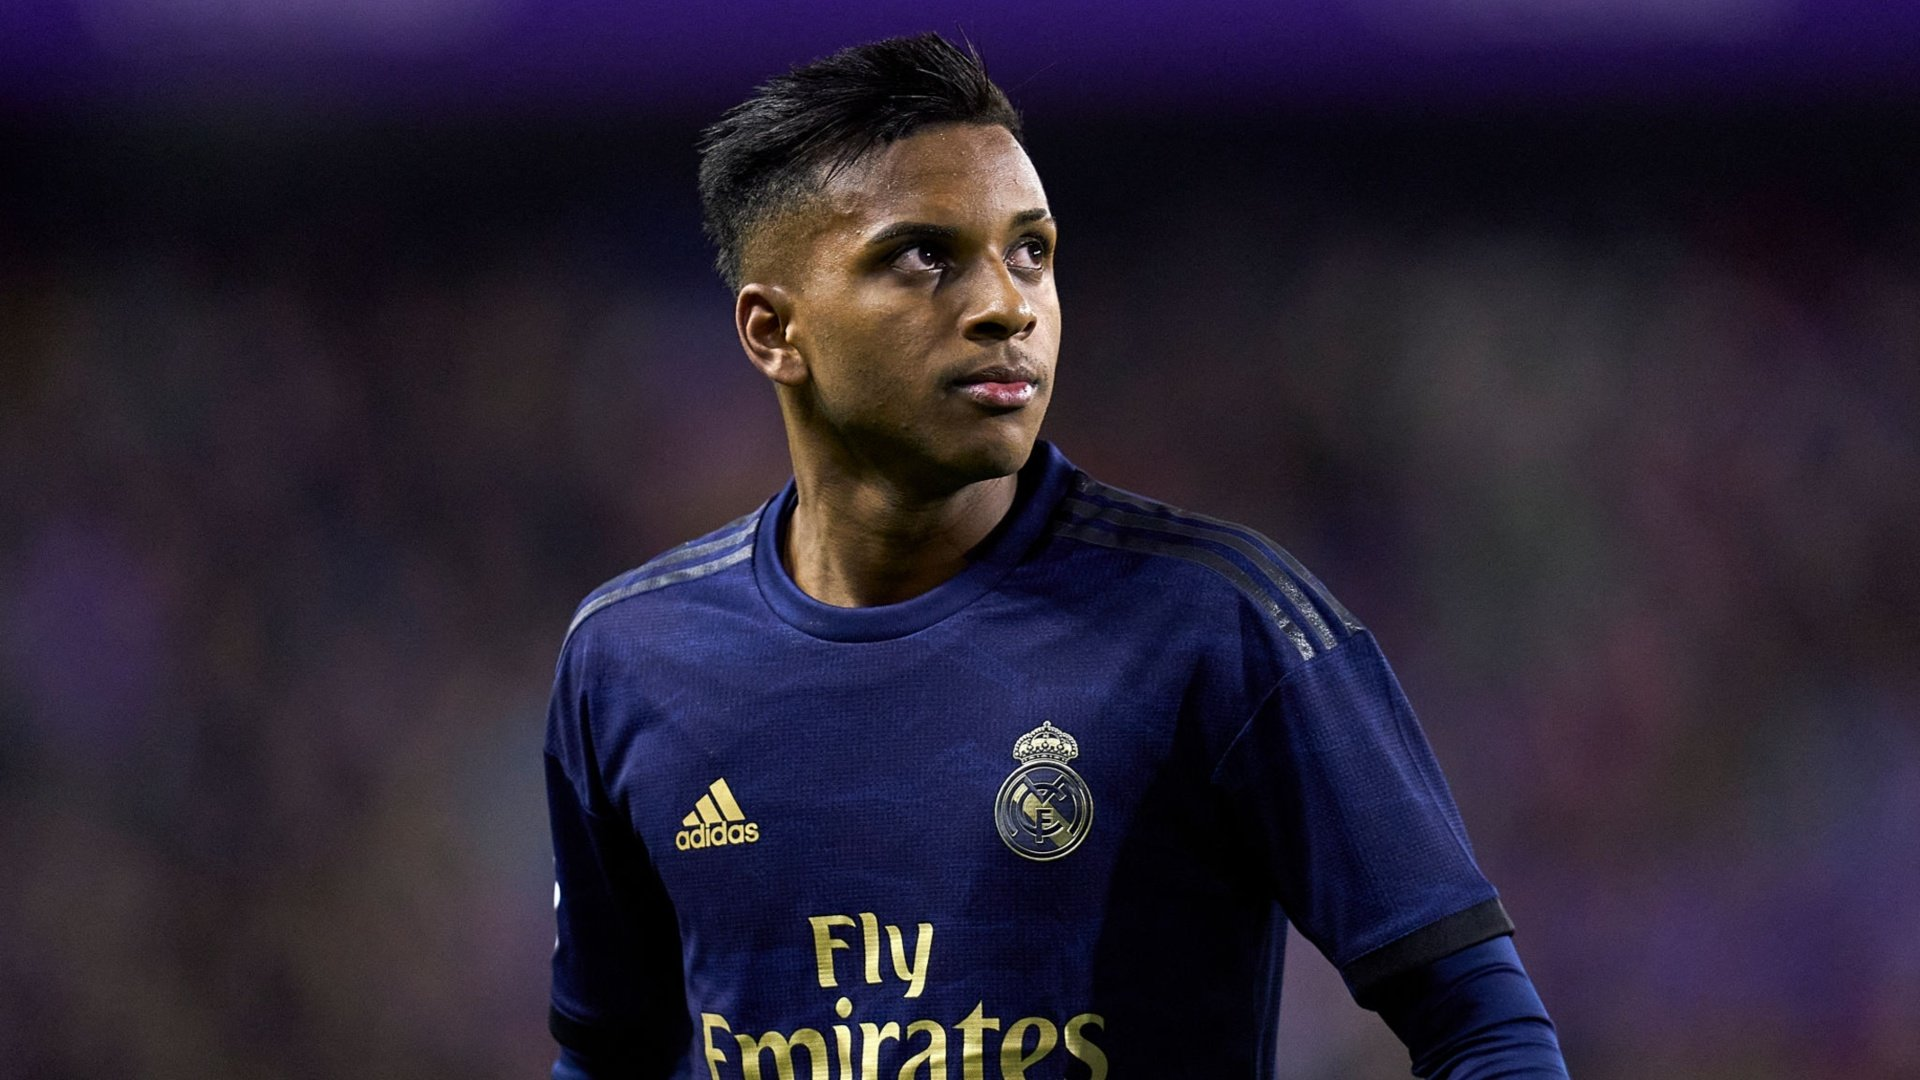 Rodrygo could make first team squad return against Real Betis